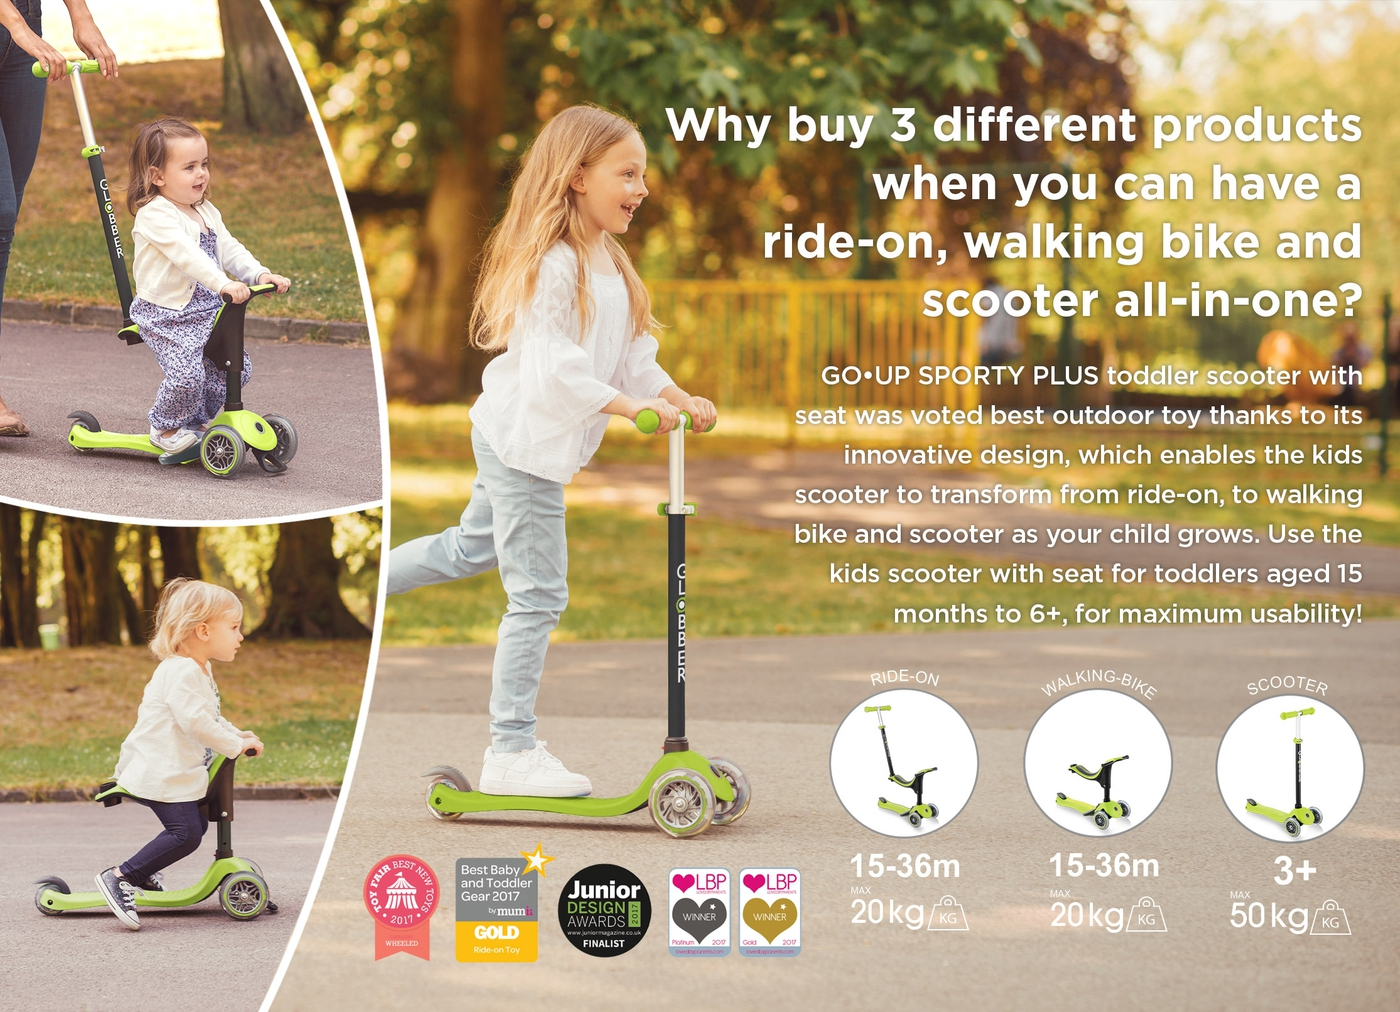 Why buy 3 different products when you can have a ride-on, walking bike and scooter all-in-one?